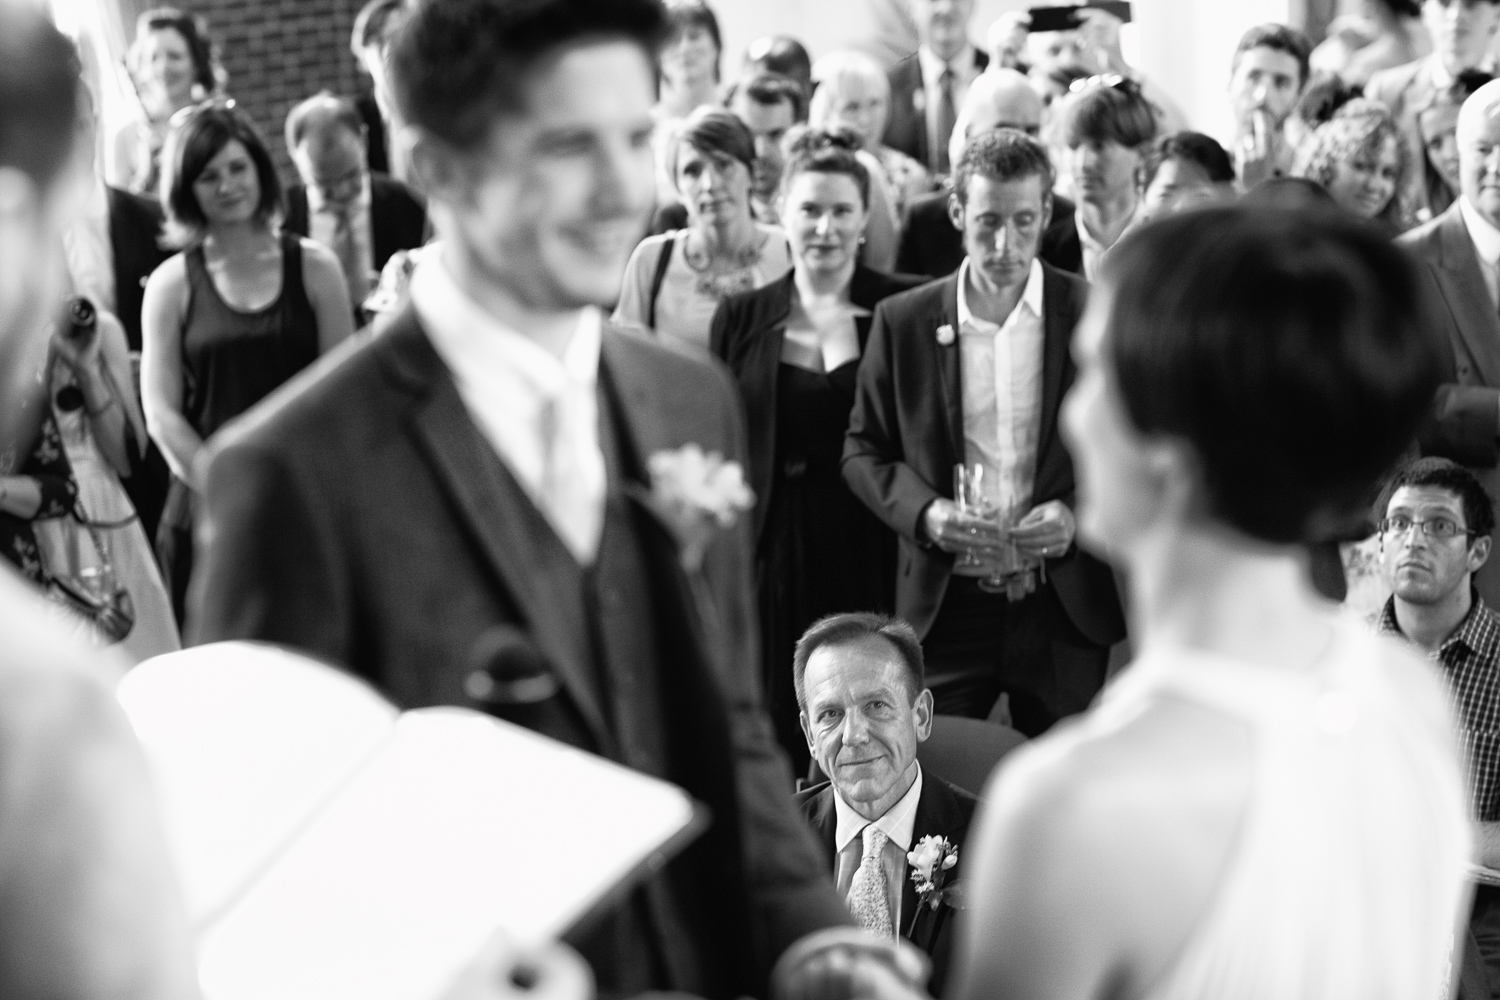 Reportage wedding photography of proud father watching bride make marriage vows